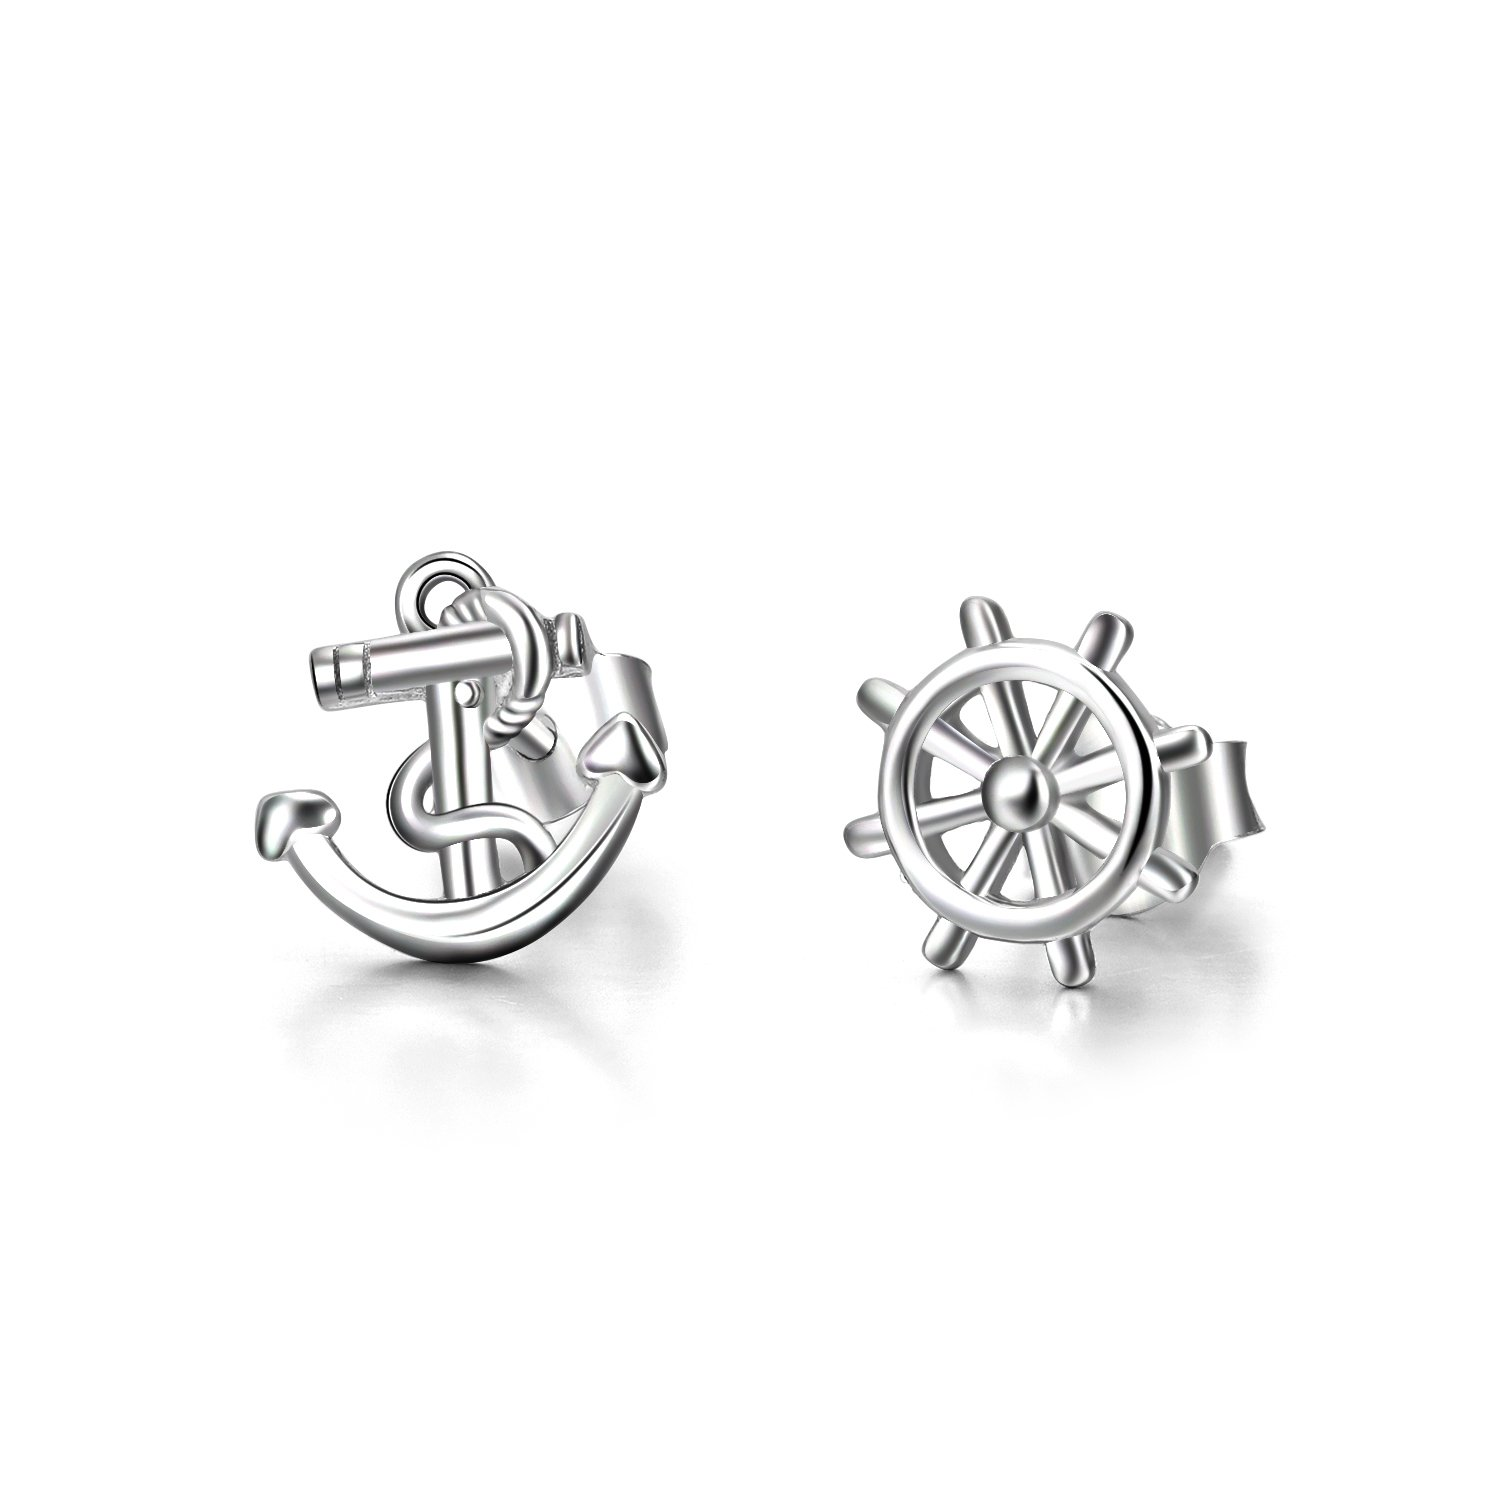 LUHE Anchor Stud Earrings 925 Sterling Silver Ship Anchor and Rudder Earrings Studs